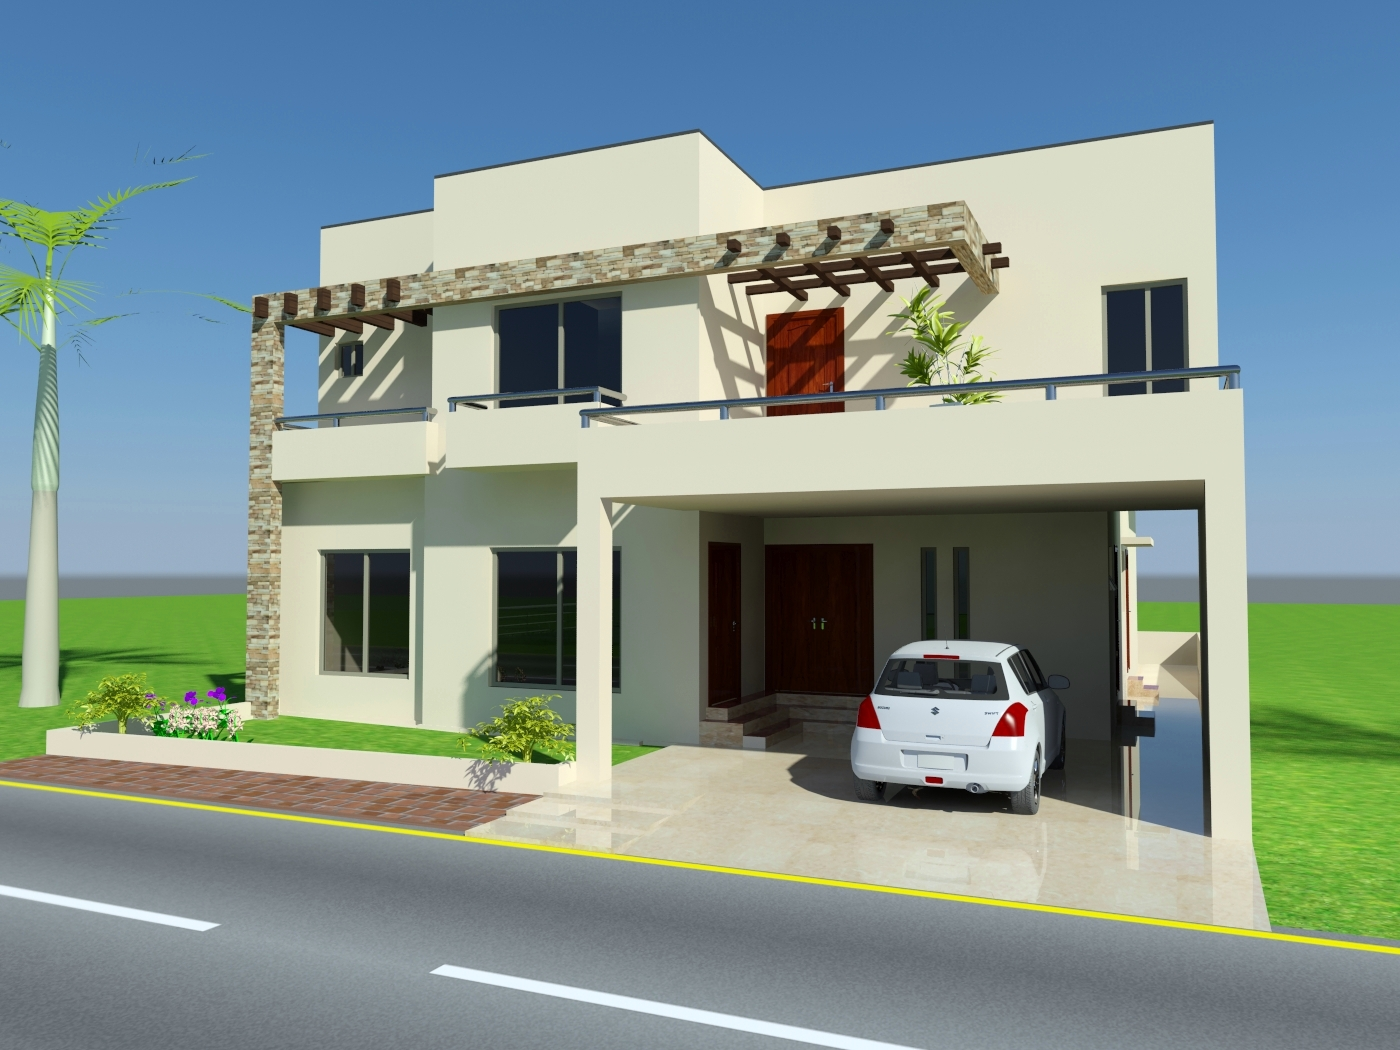 10 Marla House Design Mian Wali , Pakistan